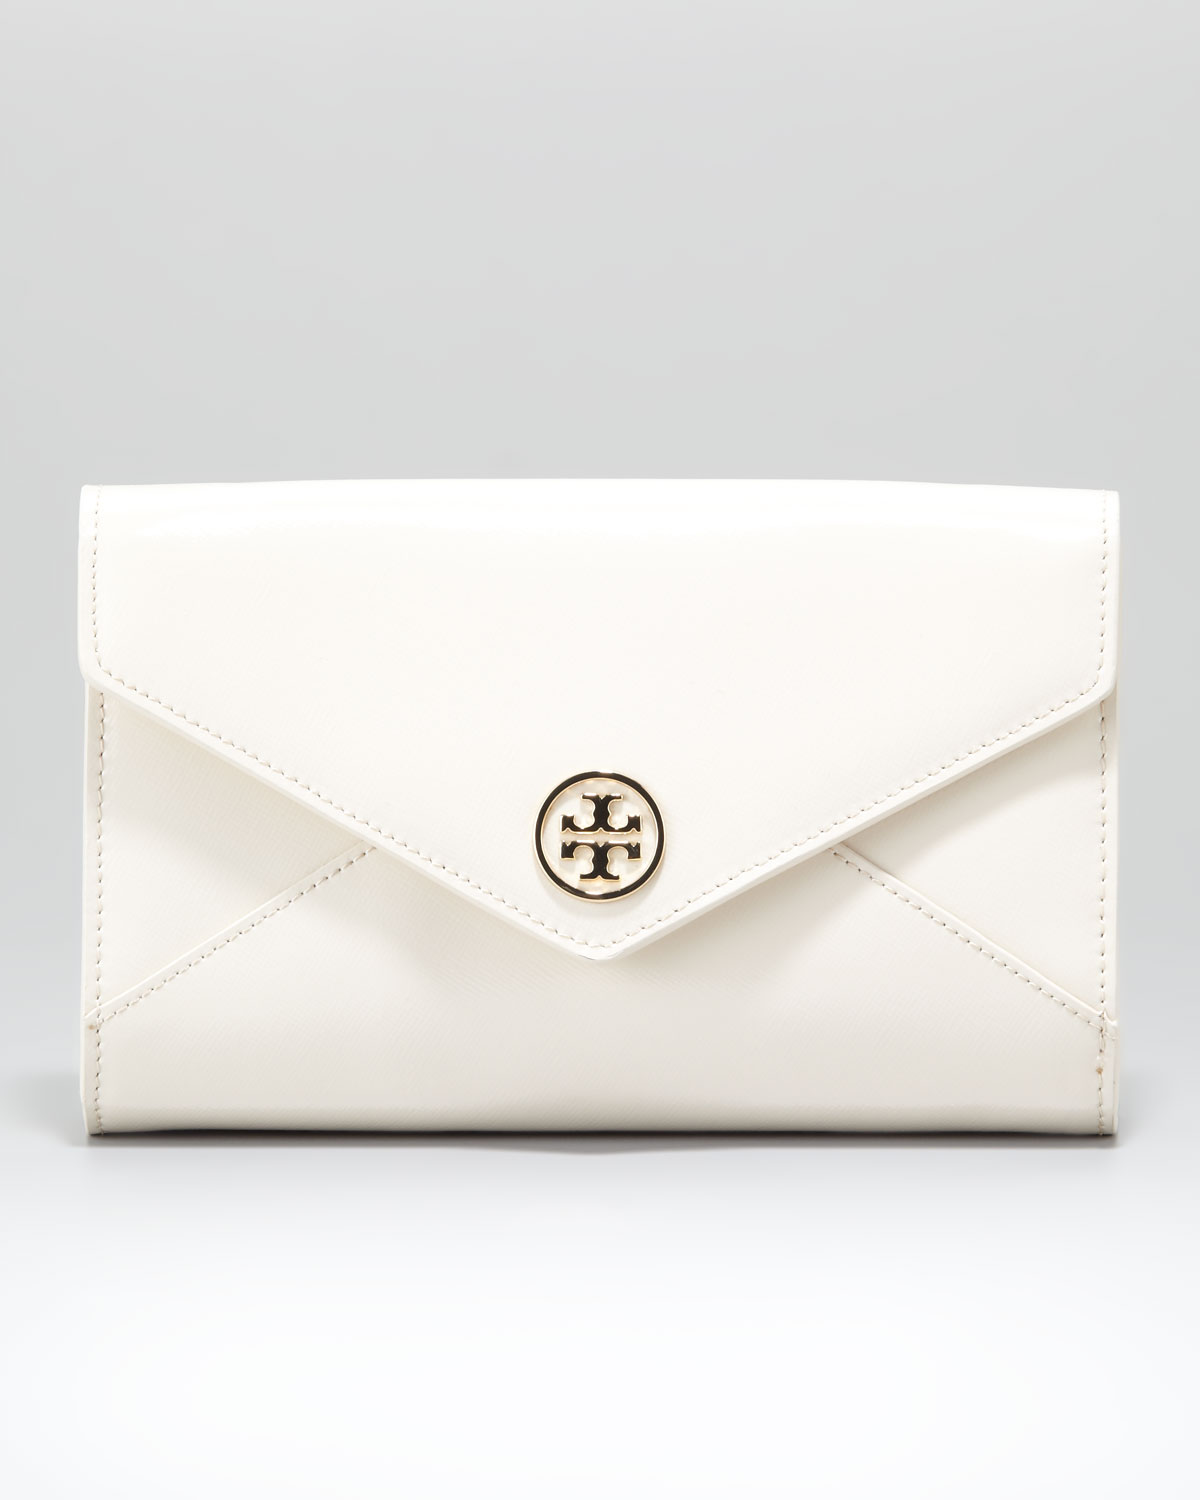 Tory burch Robinson Envelope Clutch Bag Small in White | Lyst